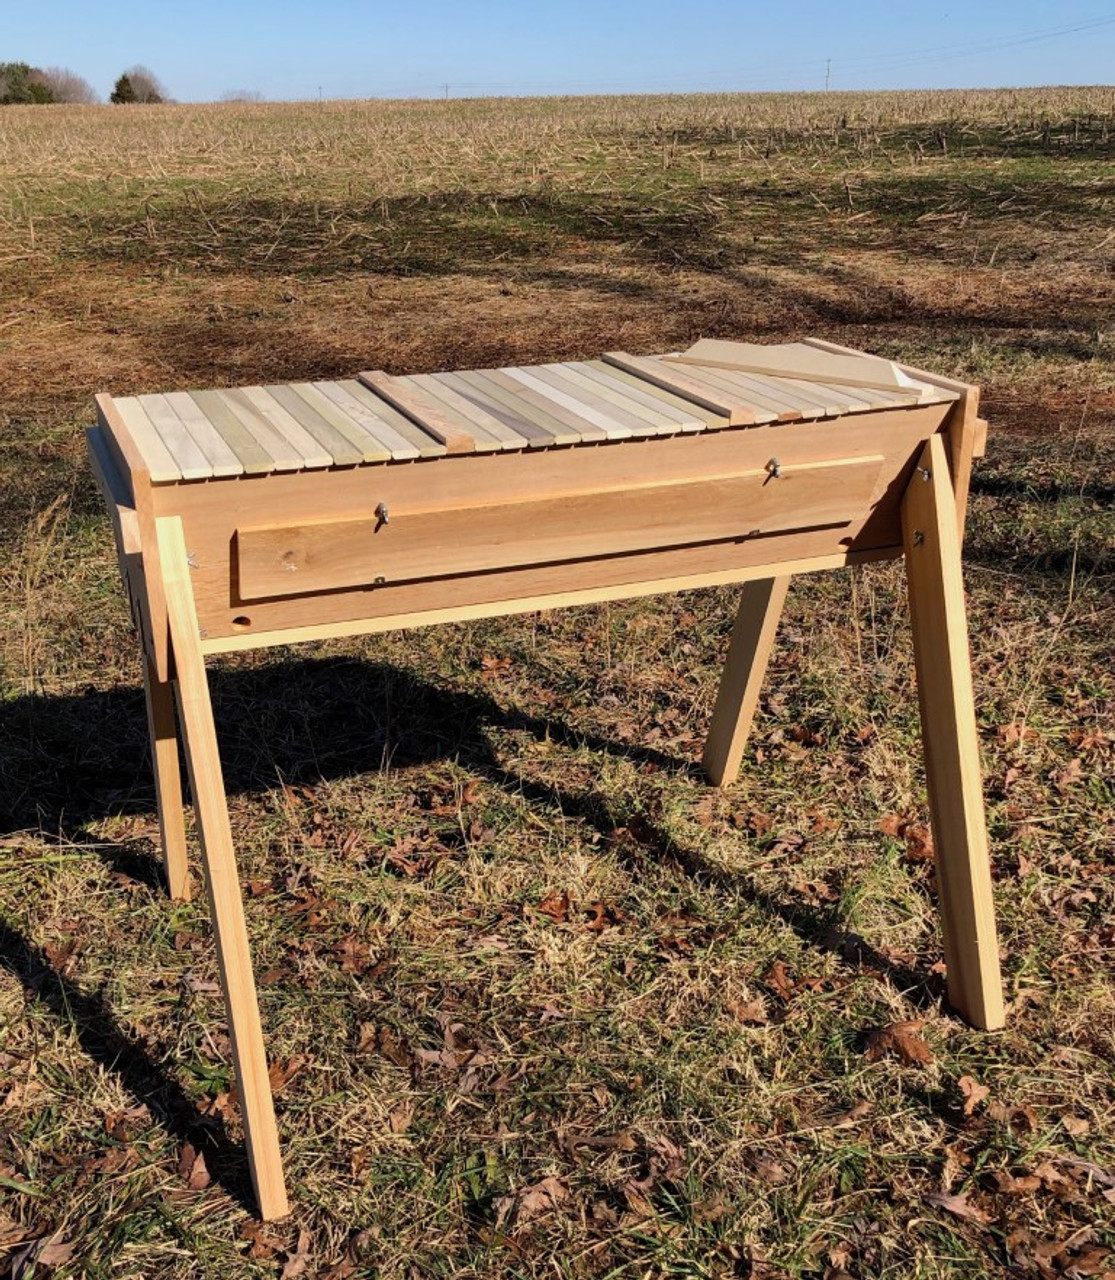 The picture shows the Gold Star top bar hive - with the roof off, revealing the 30 top bars, all touching, and the raised tops of the two follower boards.